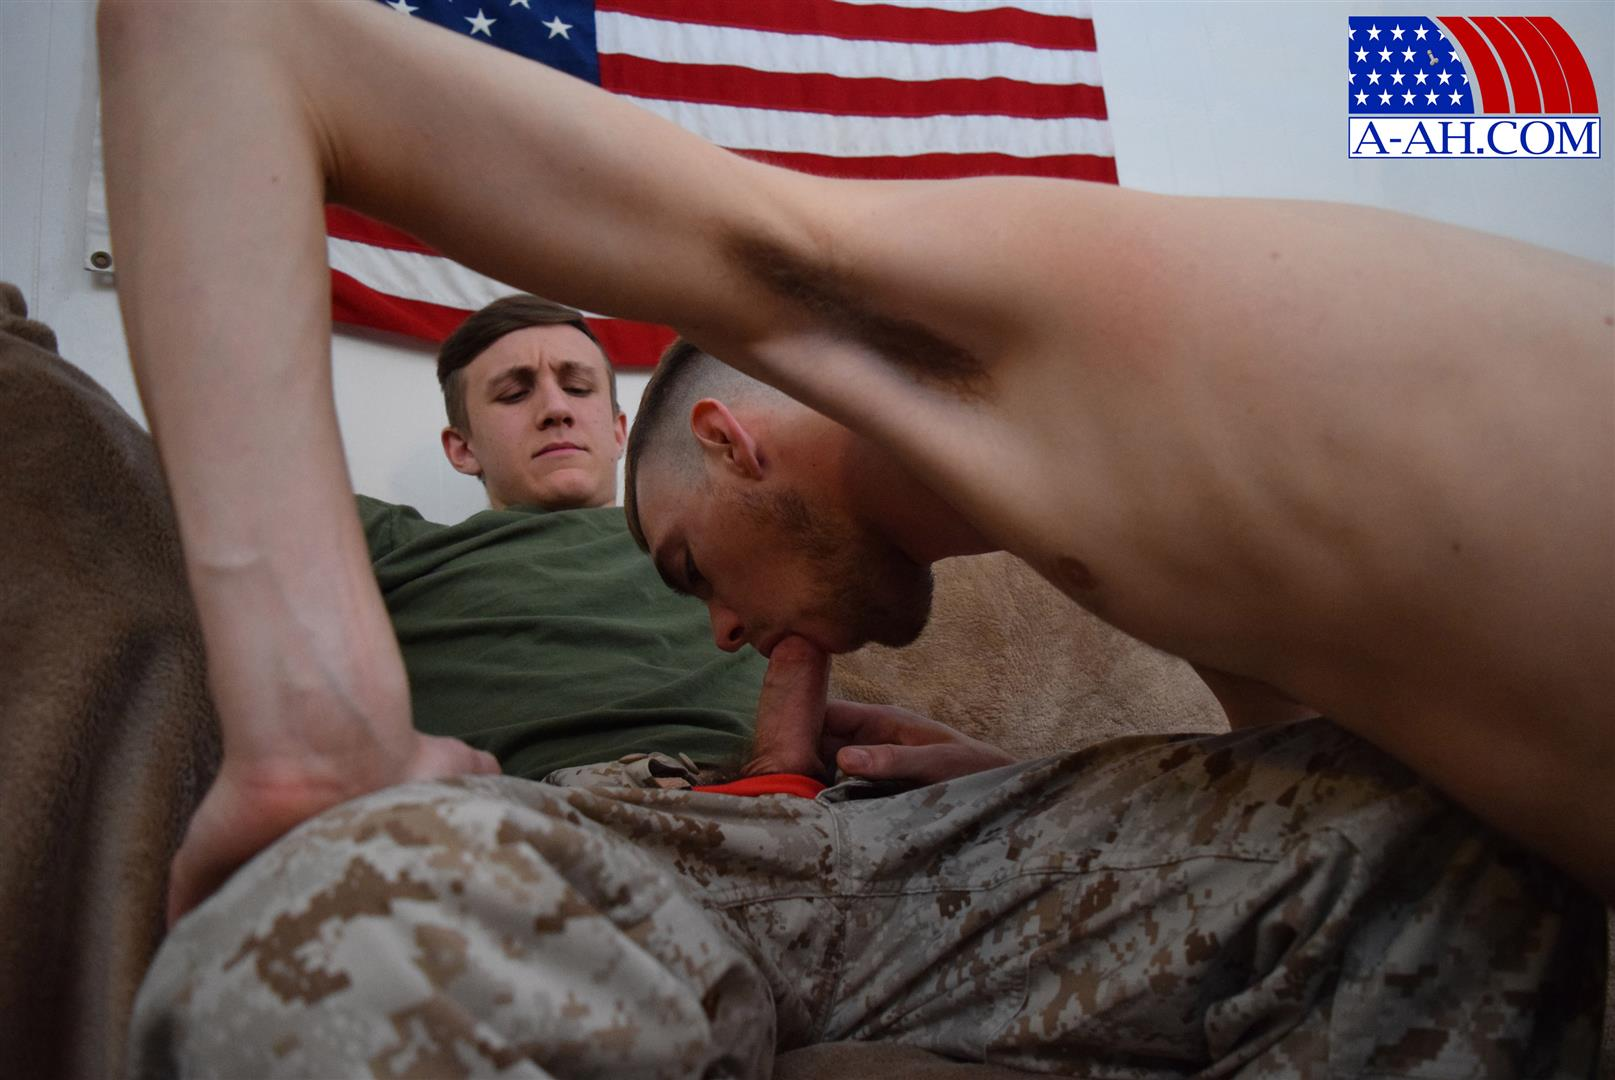 All-American-Heroes-Jett-and-Alex-Naked-Army-Guy-Gets-First-Gay-Blowjob-Amateur-Gay-Porn-05 Straight Army Private Gets A Foot Massage and His First Gay Blow Job